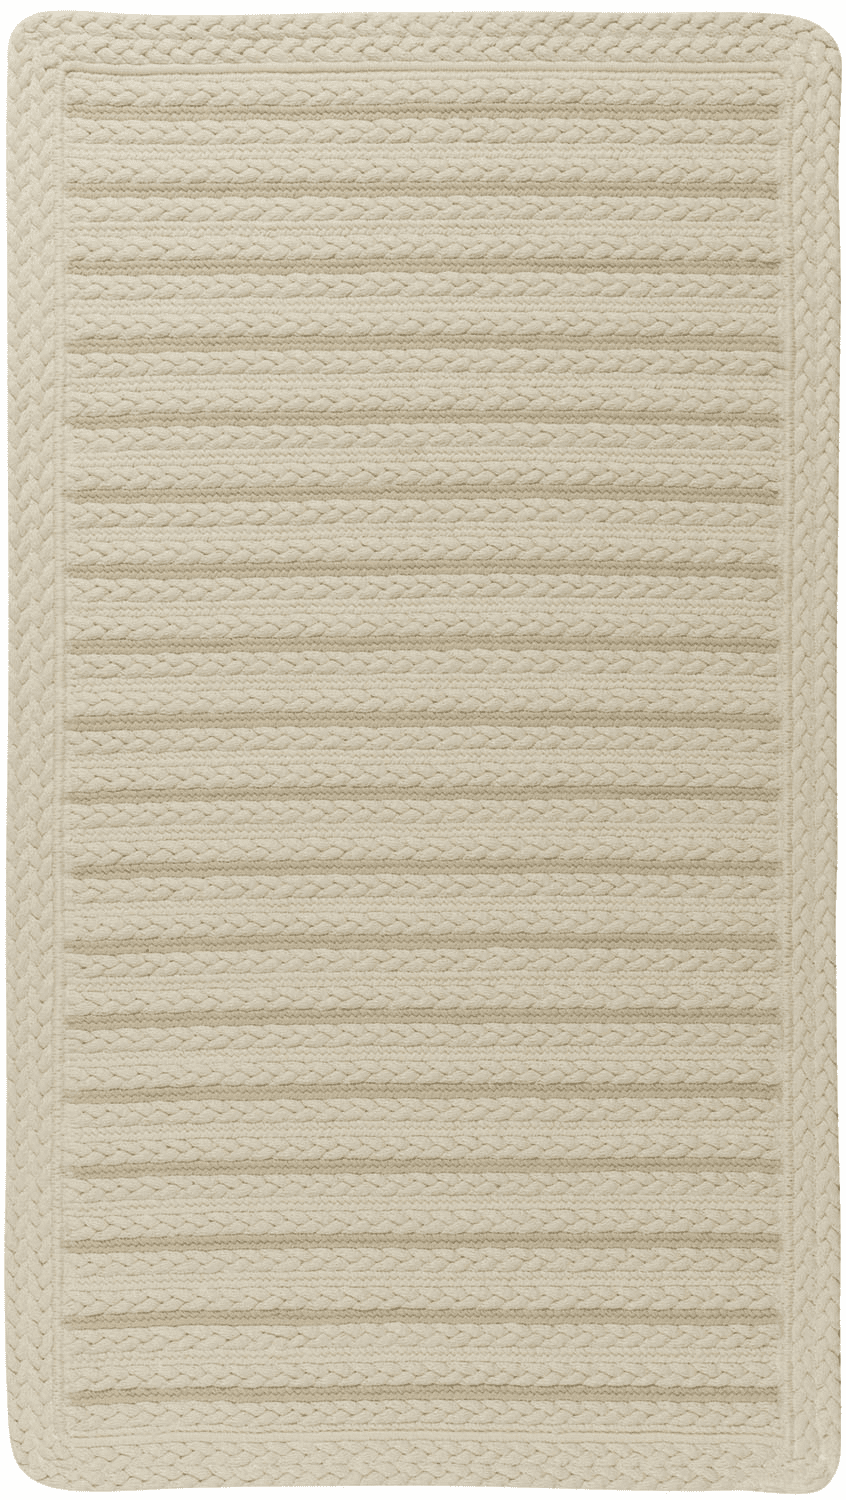 Hand-Braided Cream Rug